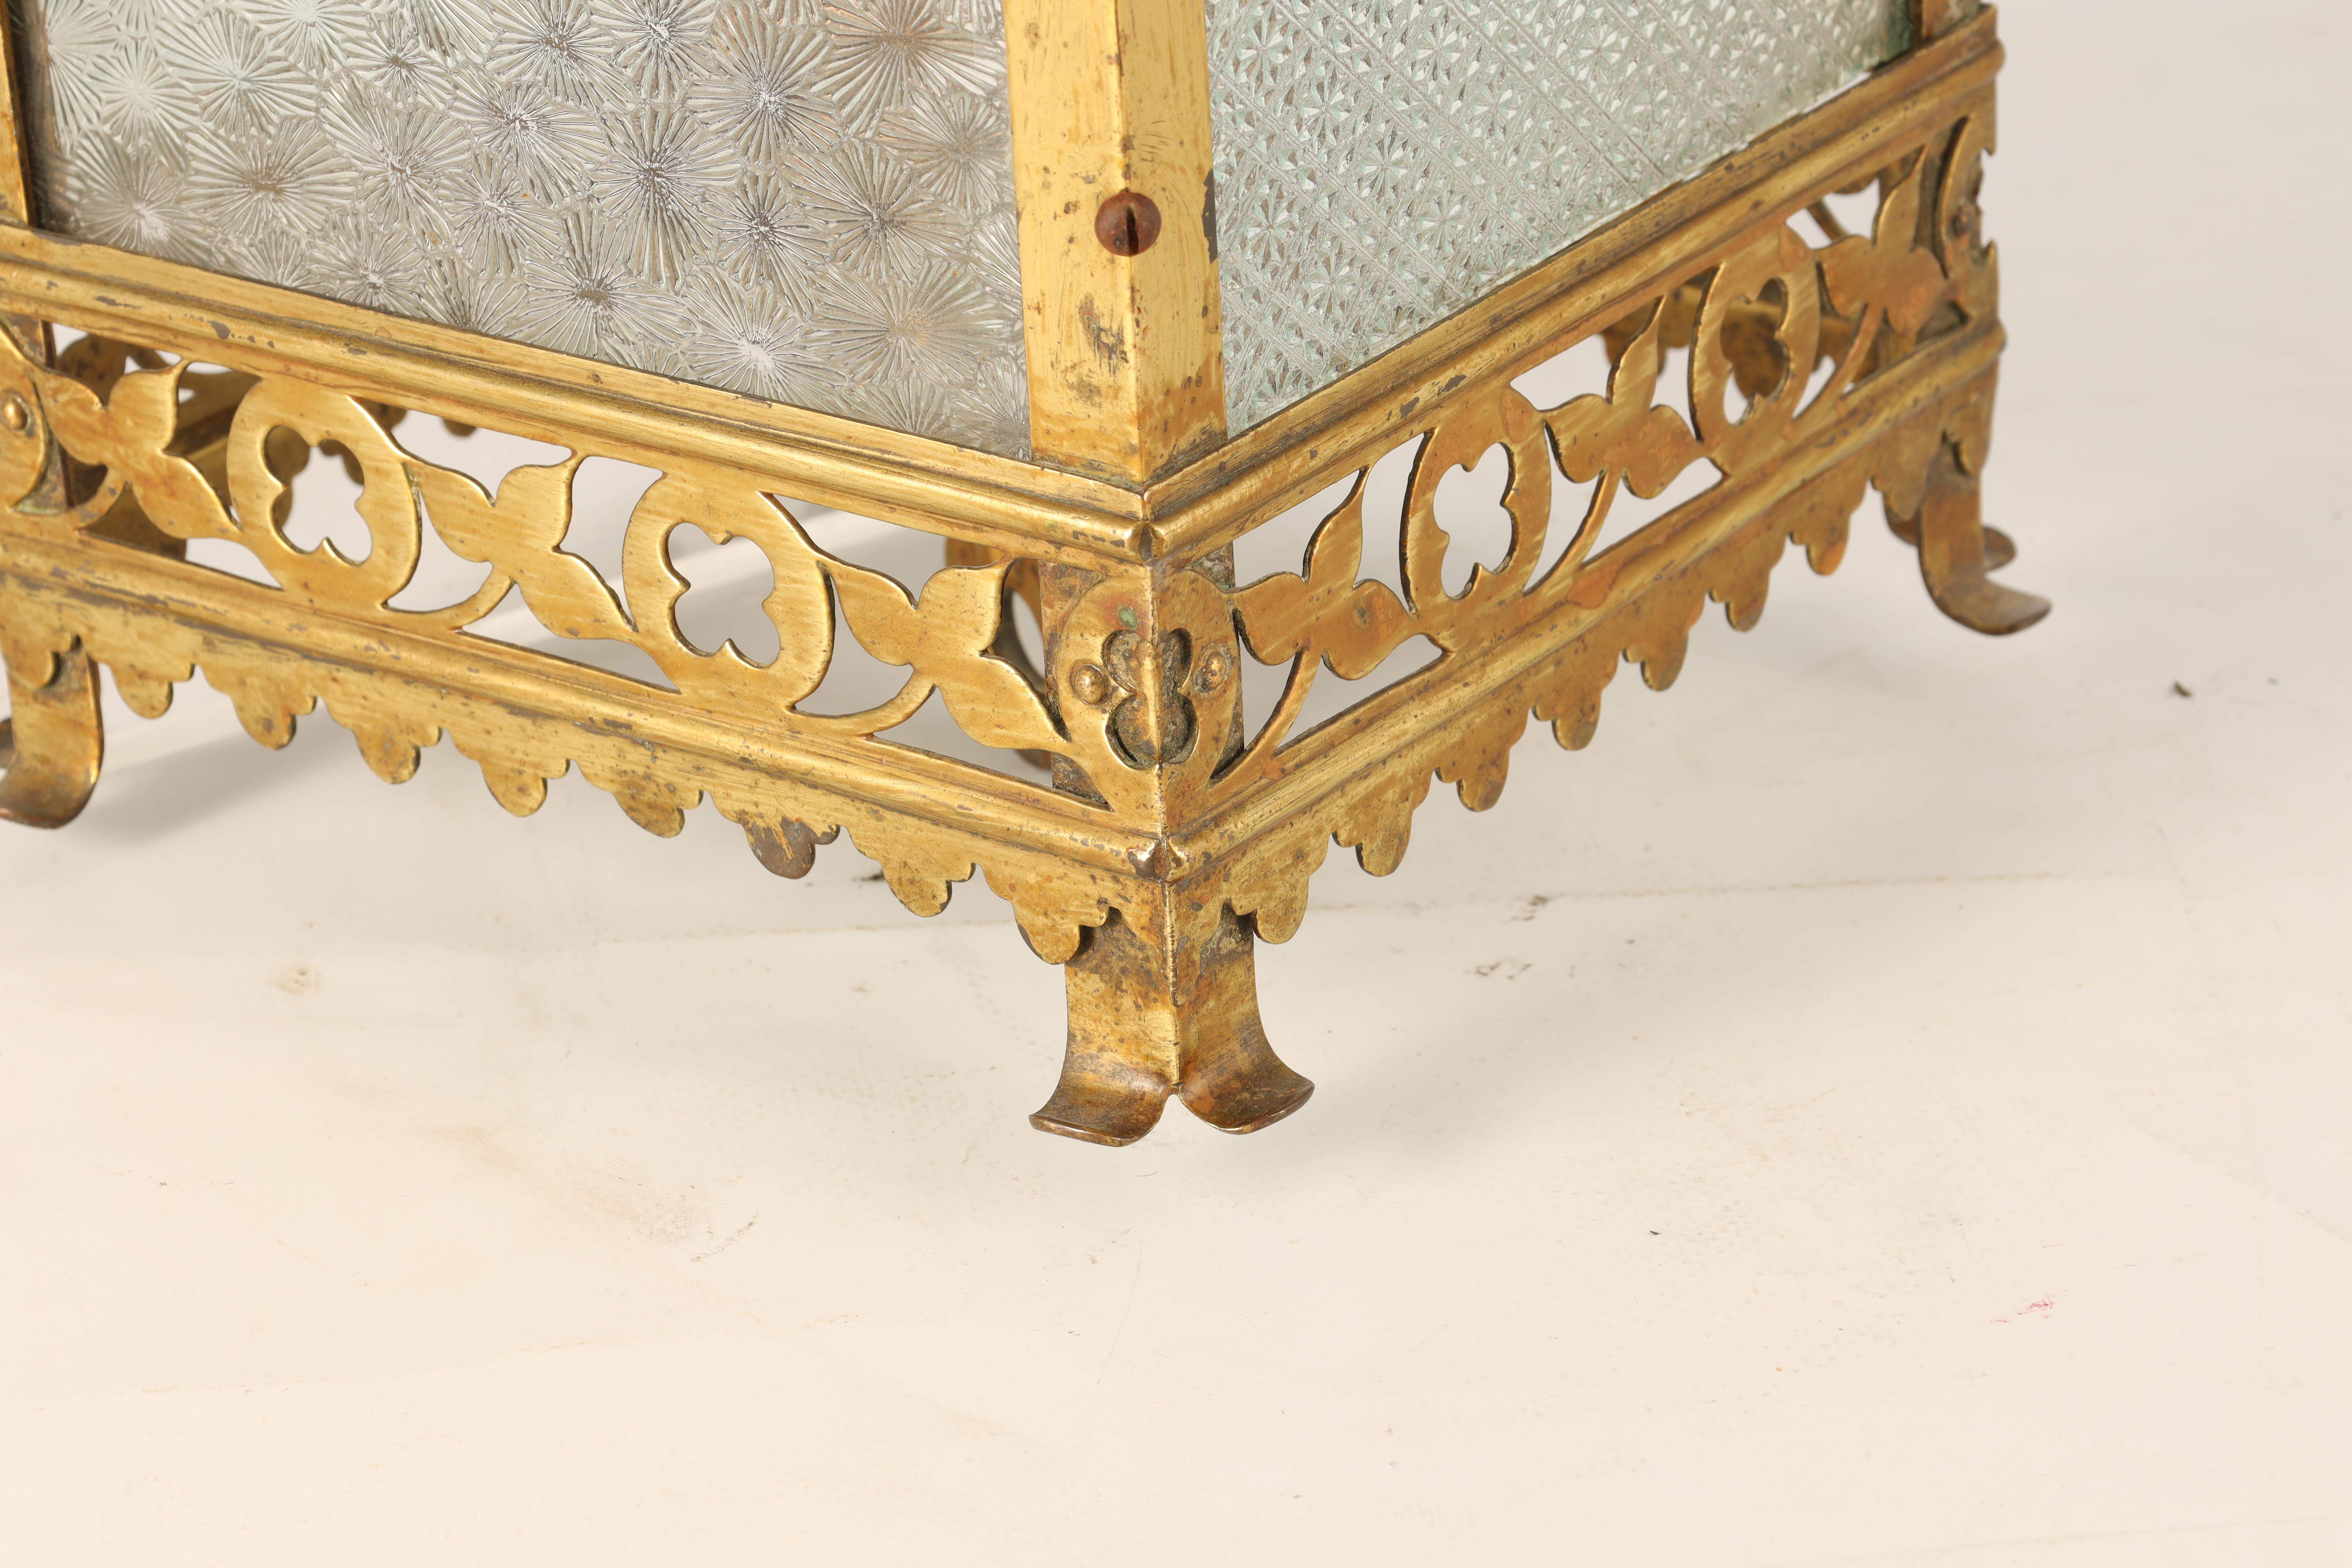 AN EARLY 20TH CENTURY LACQUERED BRASS HALL LANTERN having cabriolet shaped supports with leaf work - Image 3 of 6